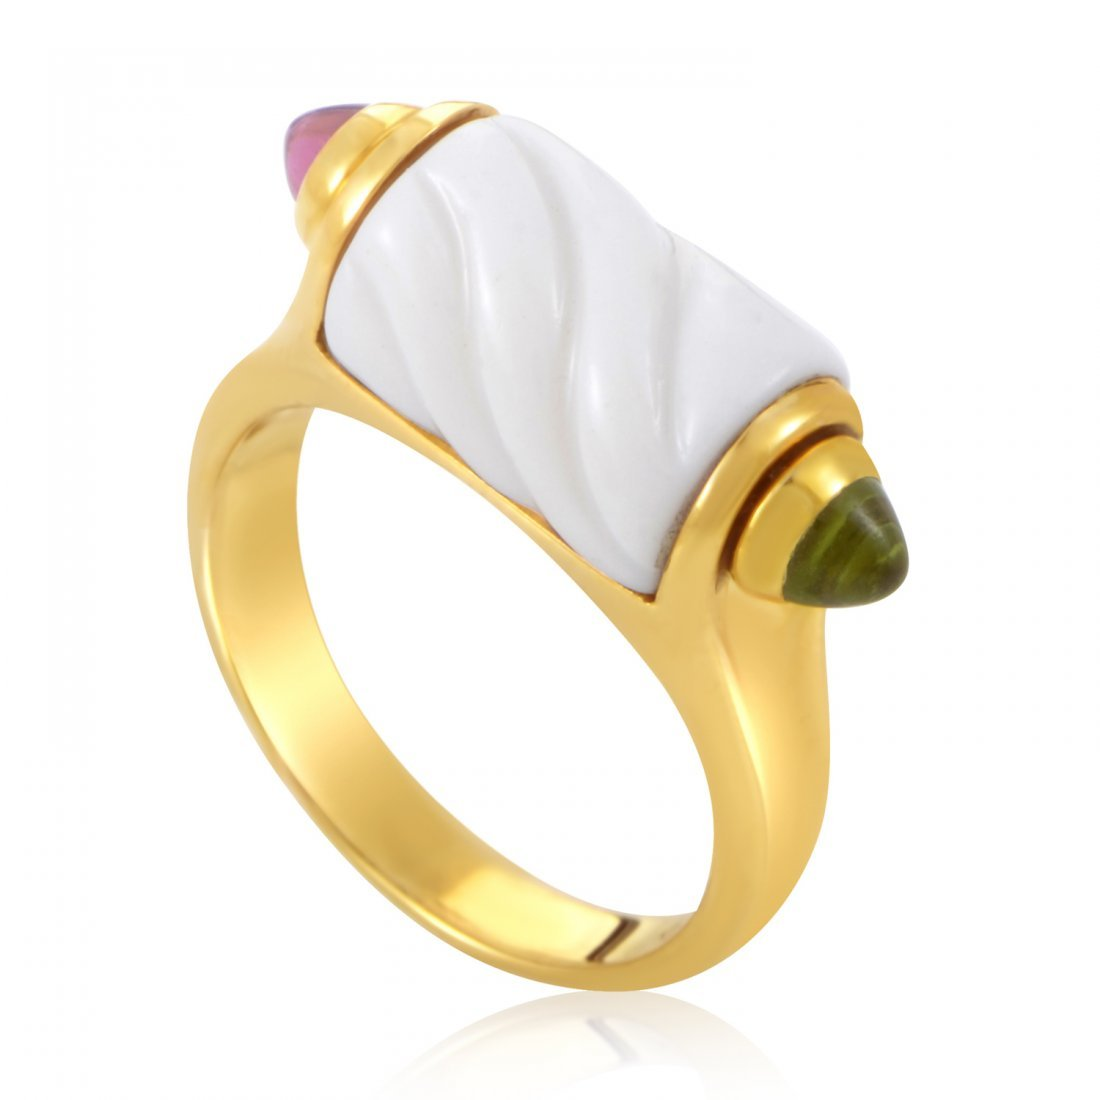 Bvlgari 18K Yellow Gold Porcelain Gemstone Ring